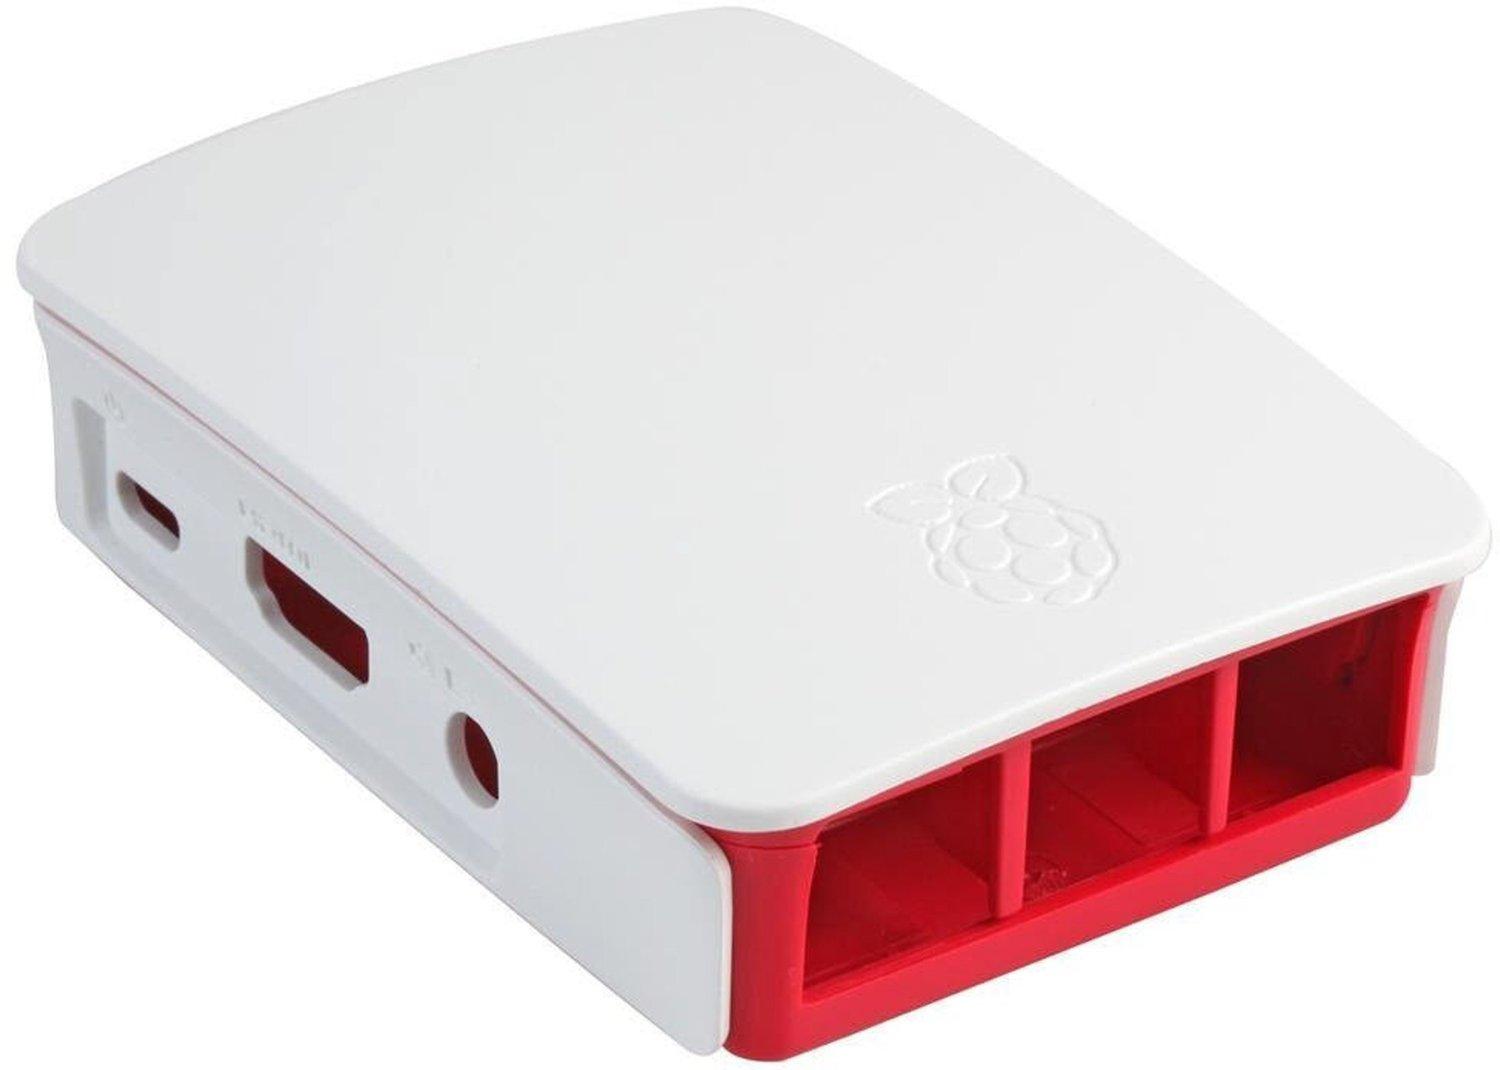 Official Raspberry Pi 3 Case for Raspberry Pi 3 Model B only Red/White